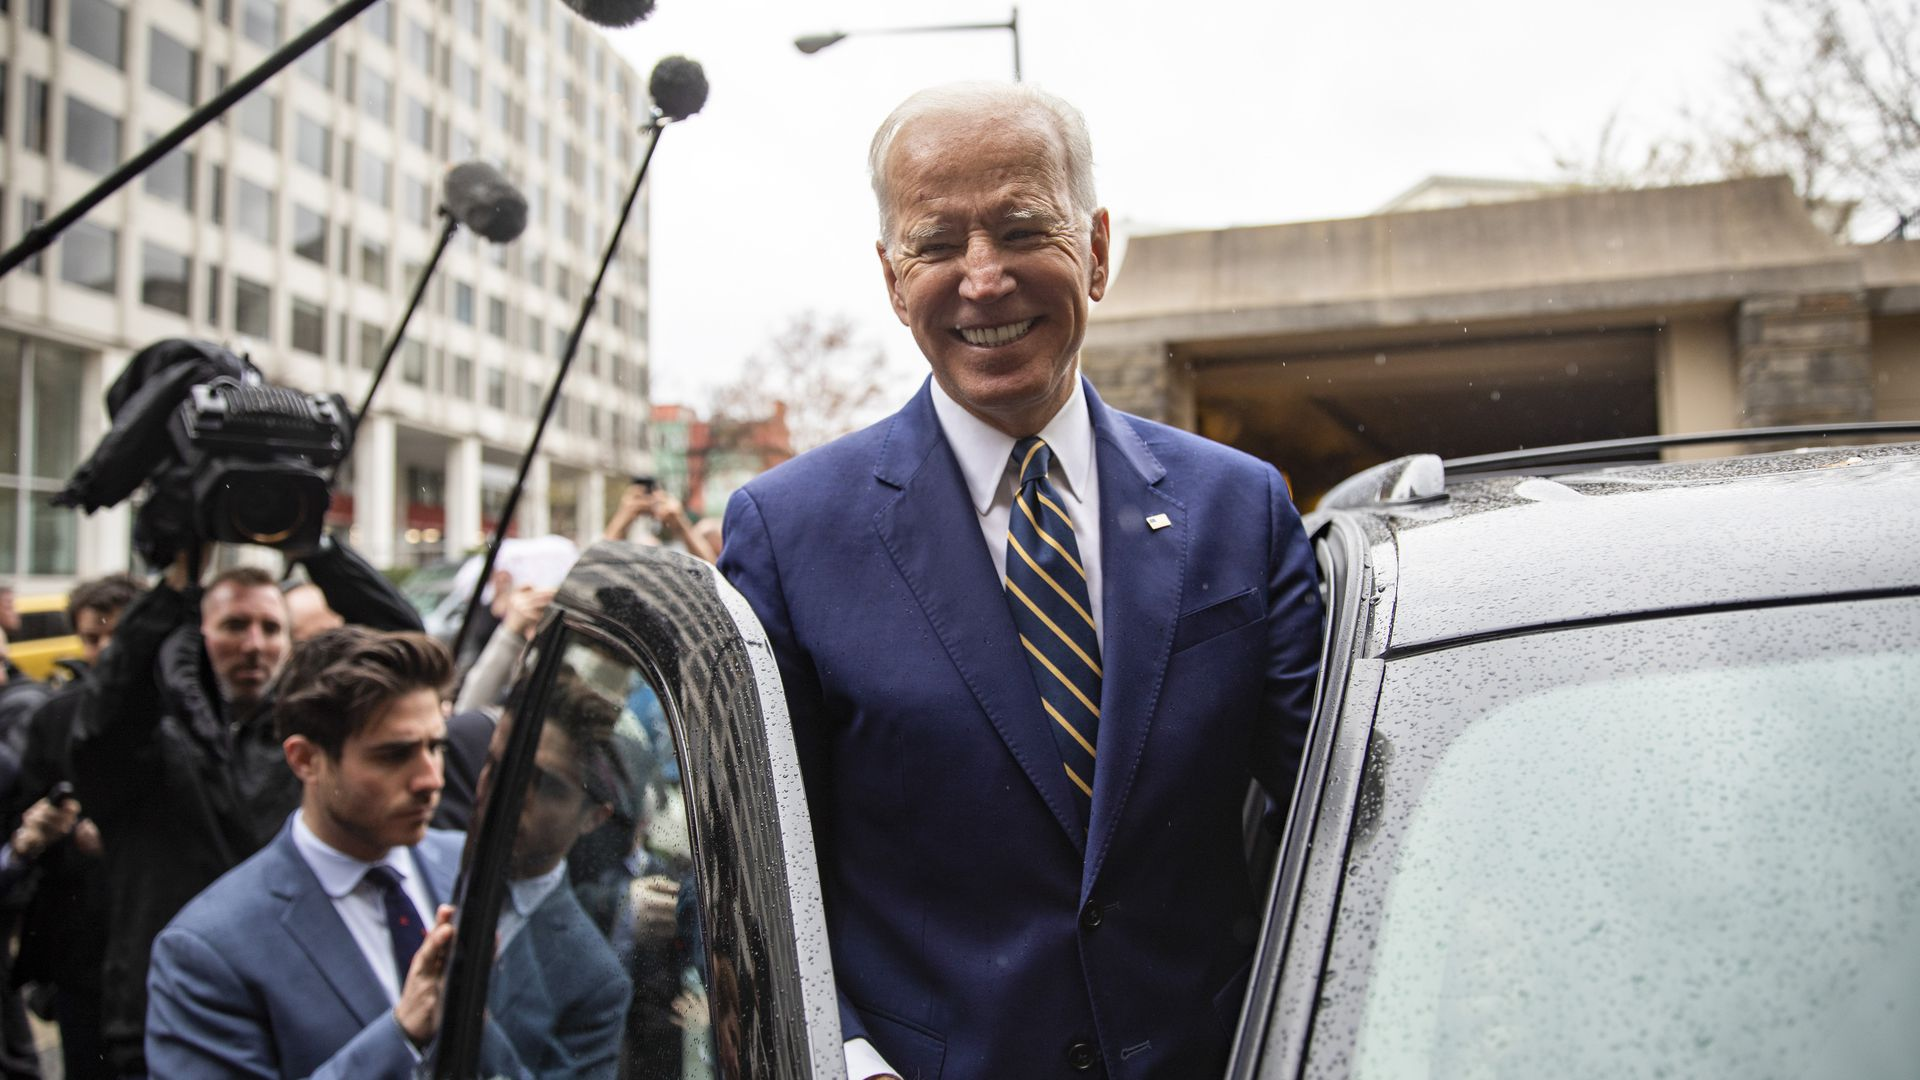 Ending months of speculation, Joe Biden launches his 2020 presidential campaign